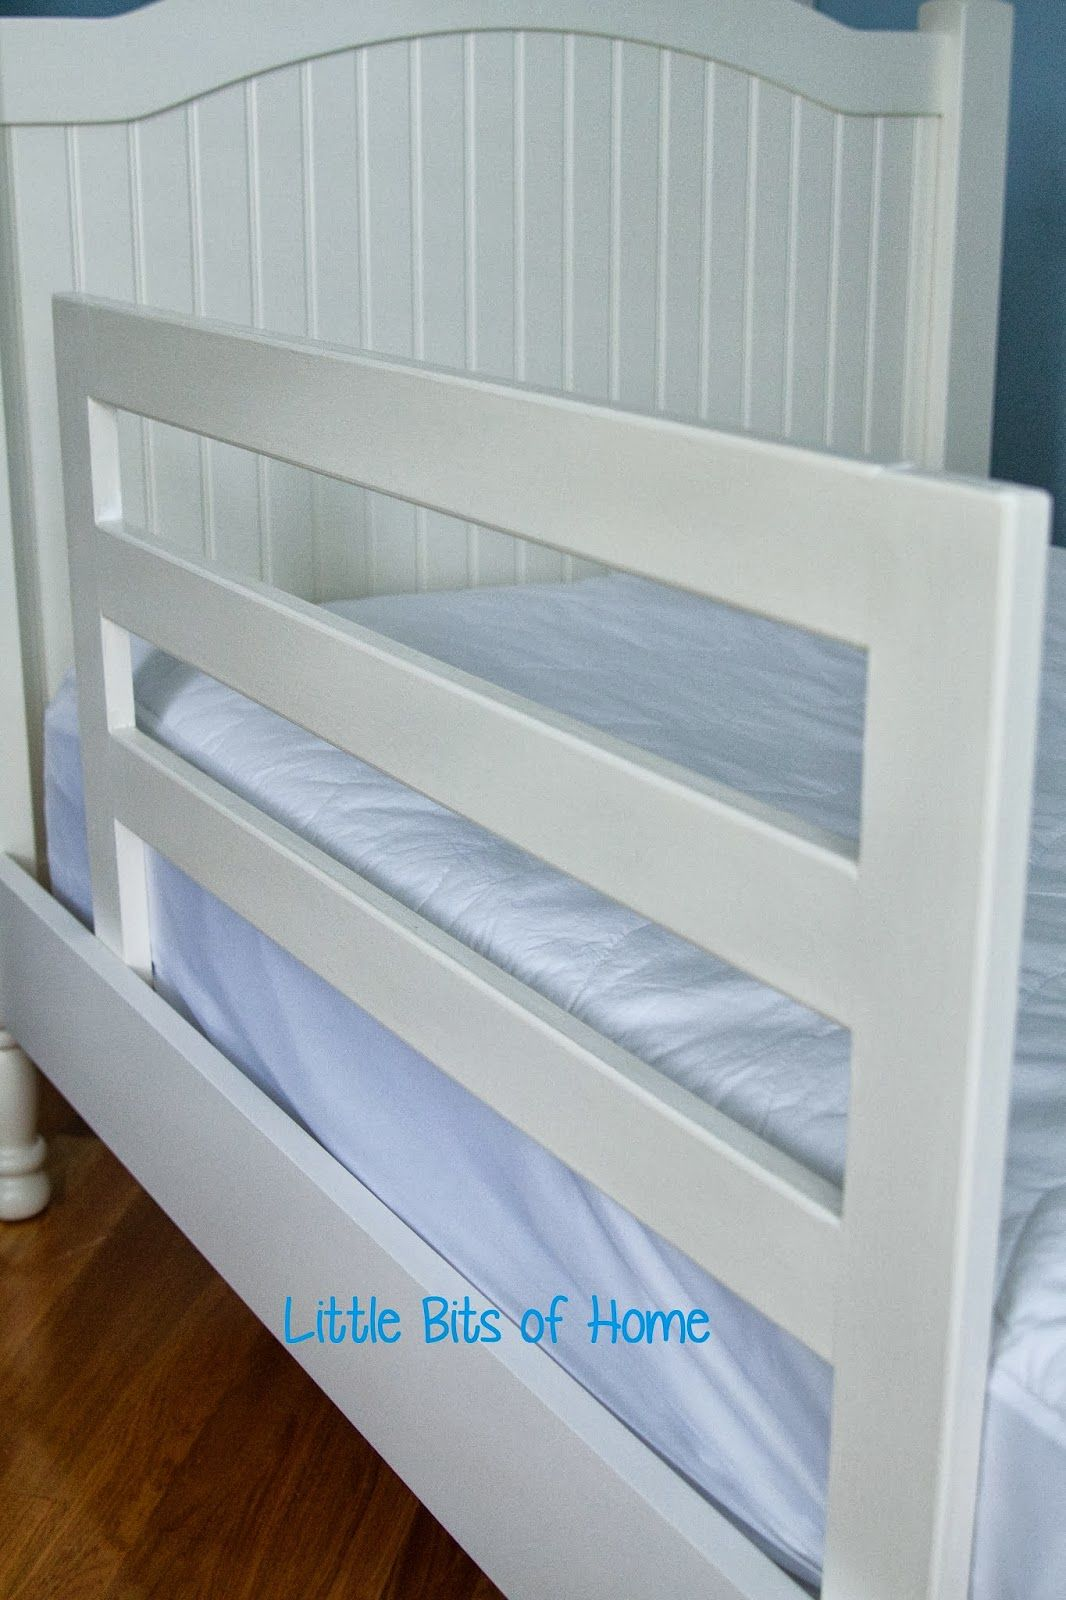 Store Banne Manuel La Redoute Little Bits Of Home Pottery Barn Knock Off Bed Rails Little